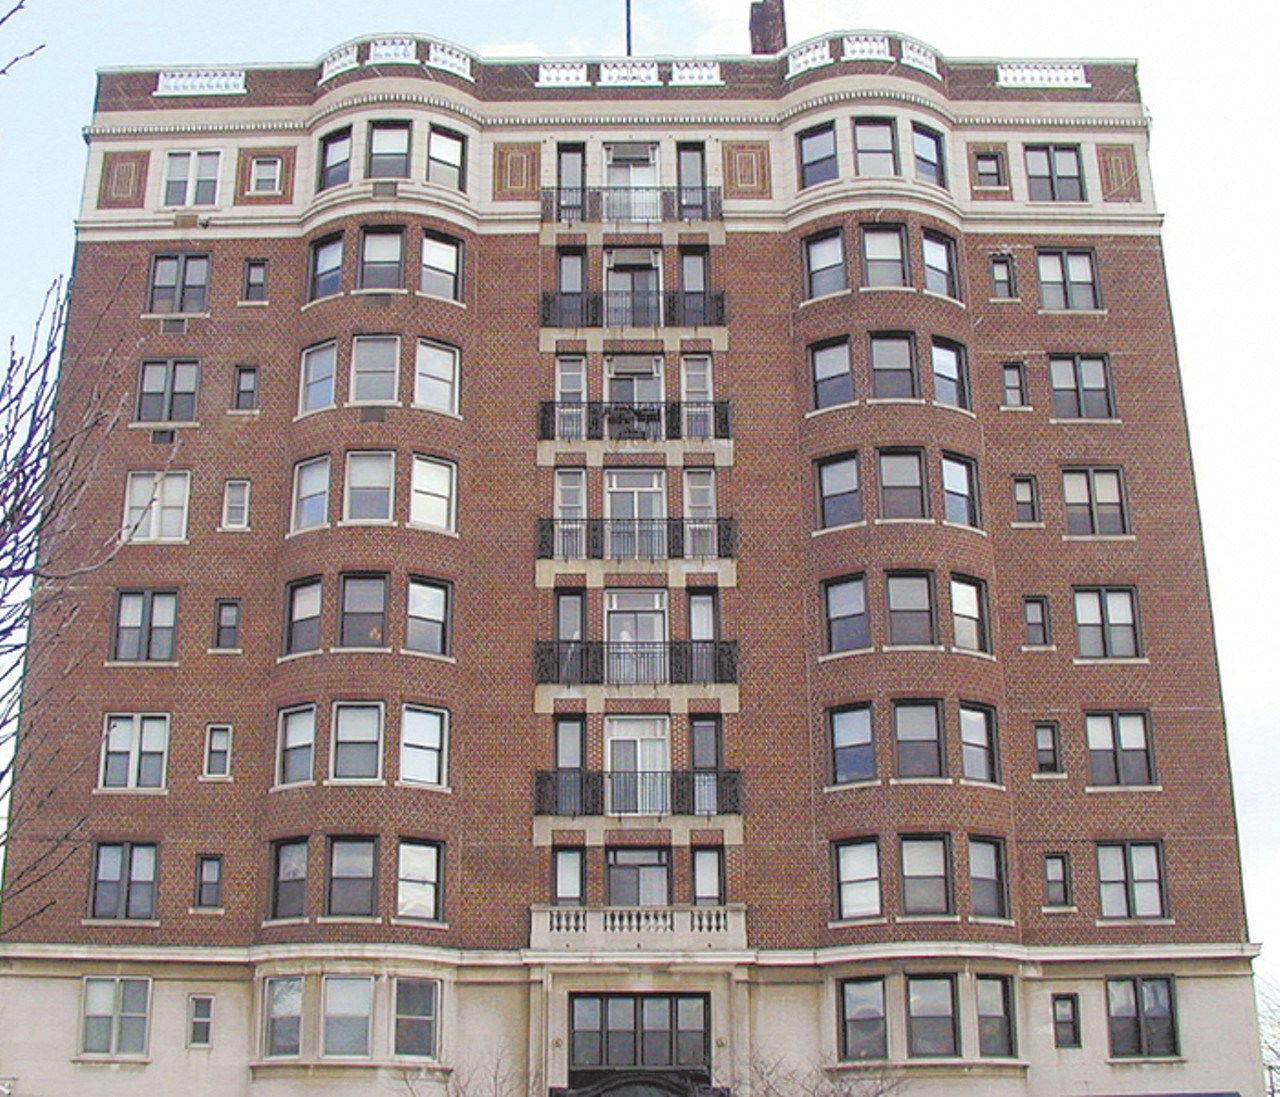 2 Bedroom Apartments In Detroit A Look At Detroit S Garden Court Apartments Culture